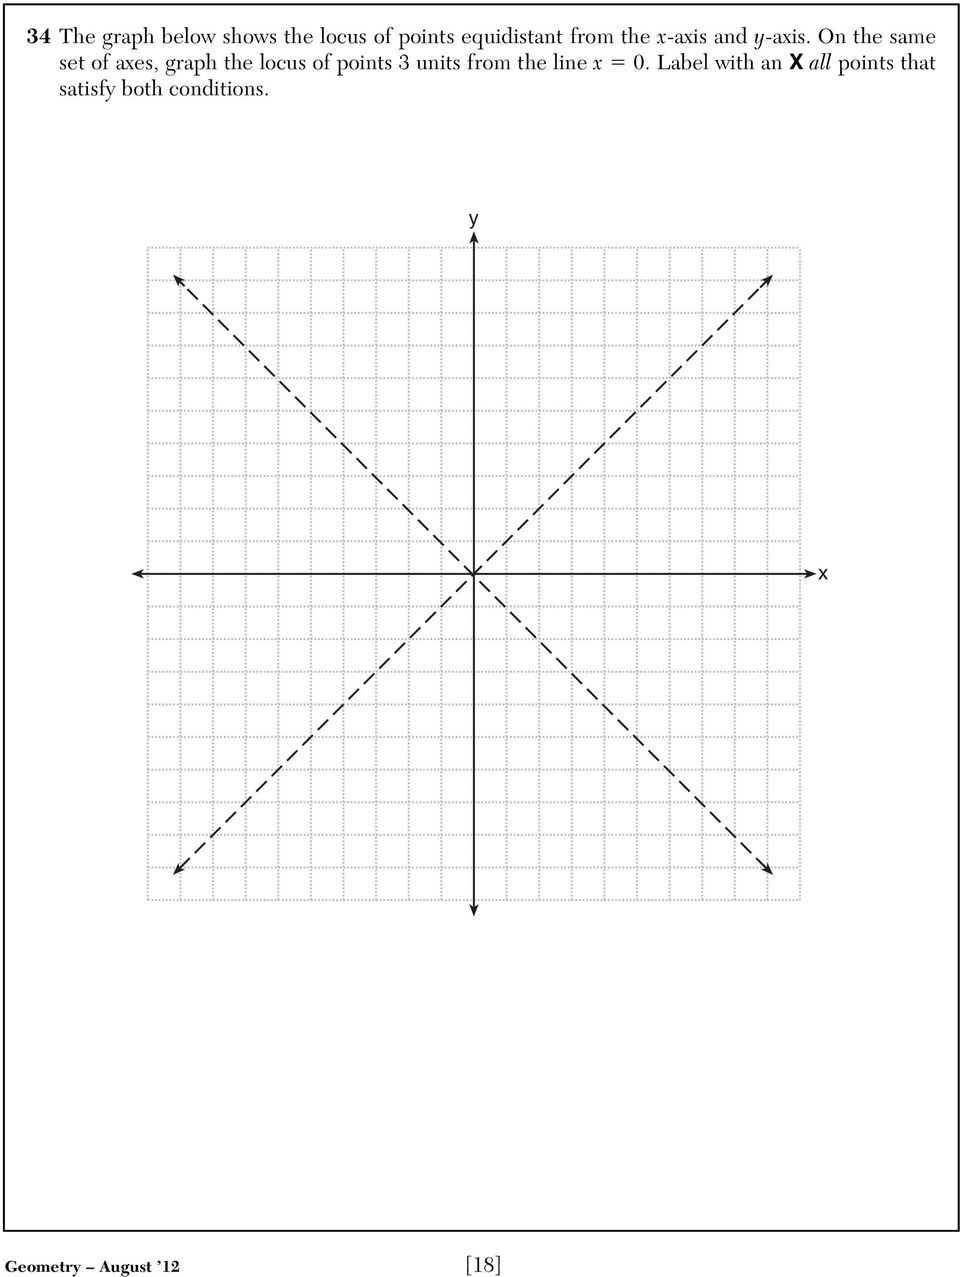 On the same set of axes, graph the locus of points 3 units